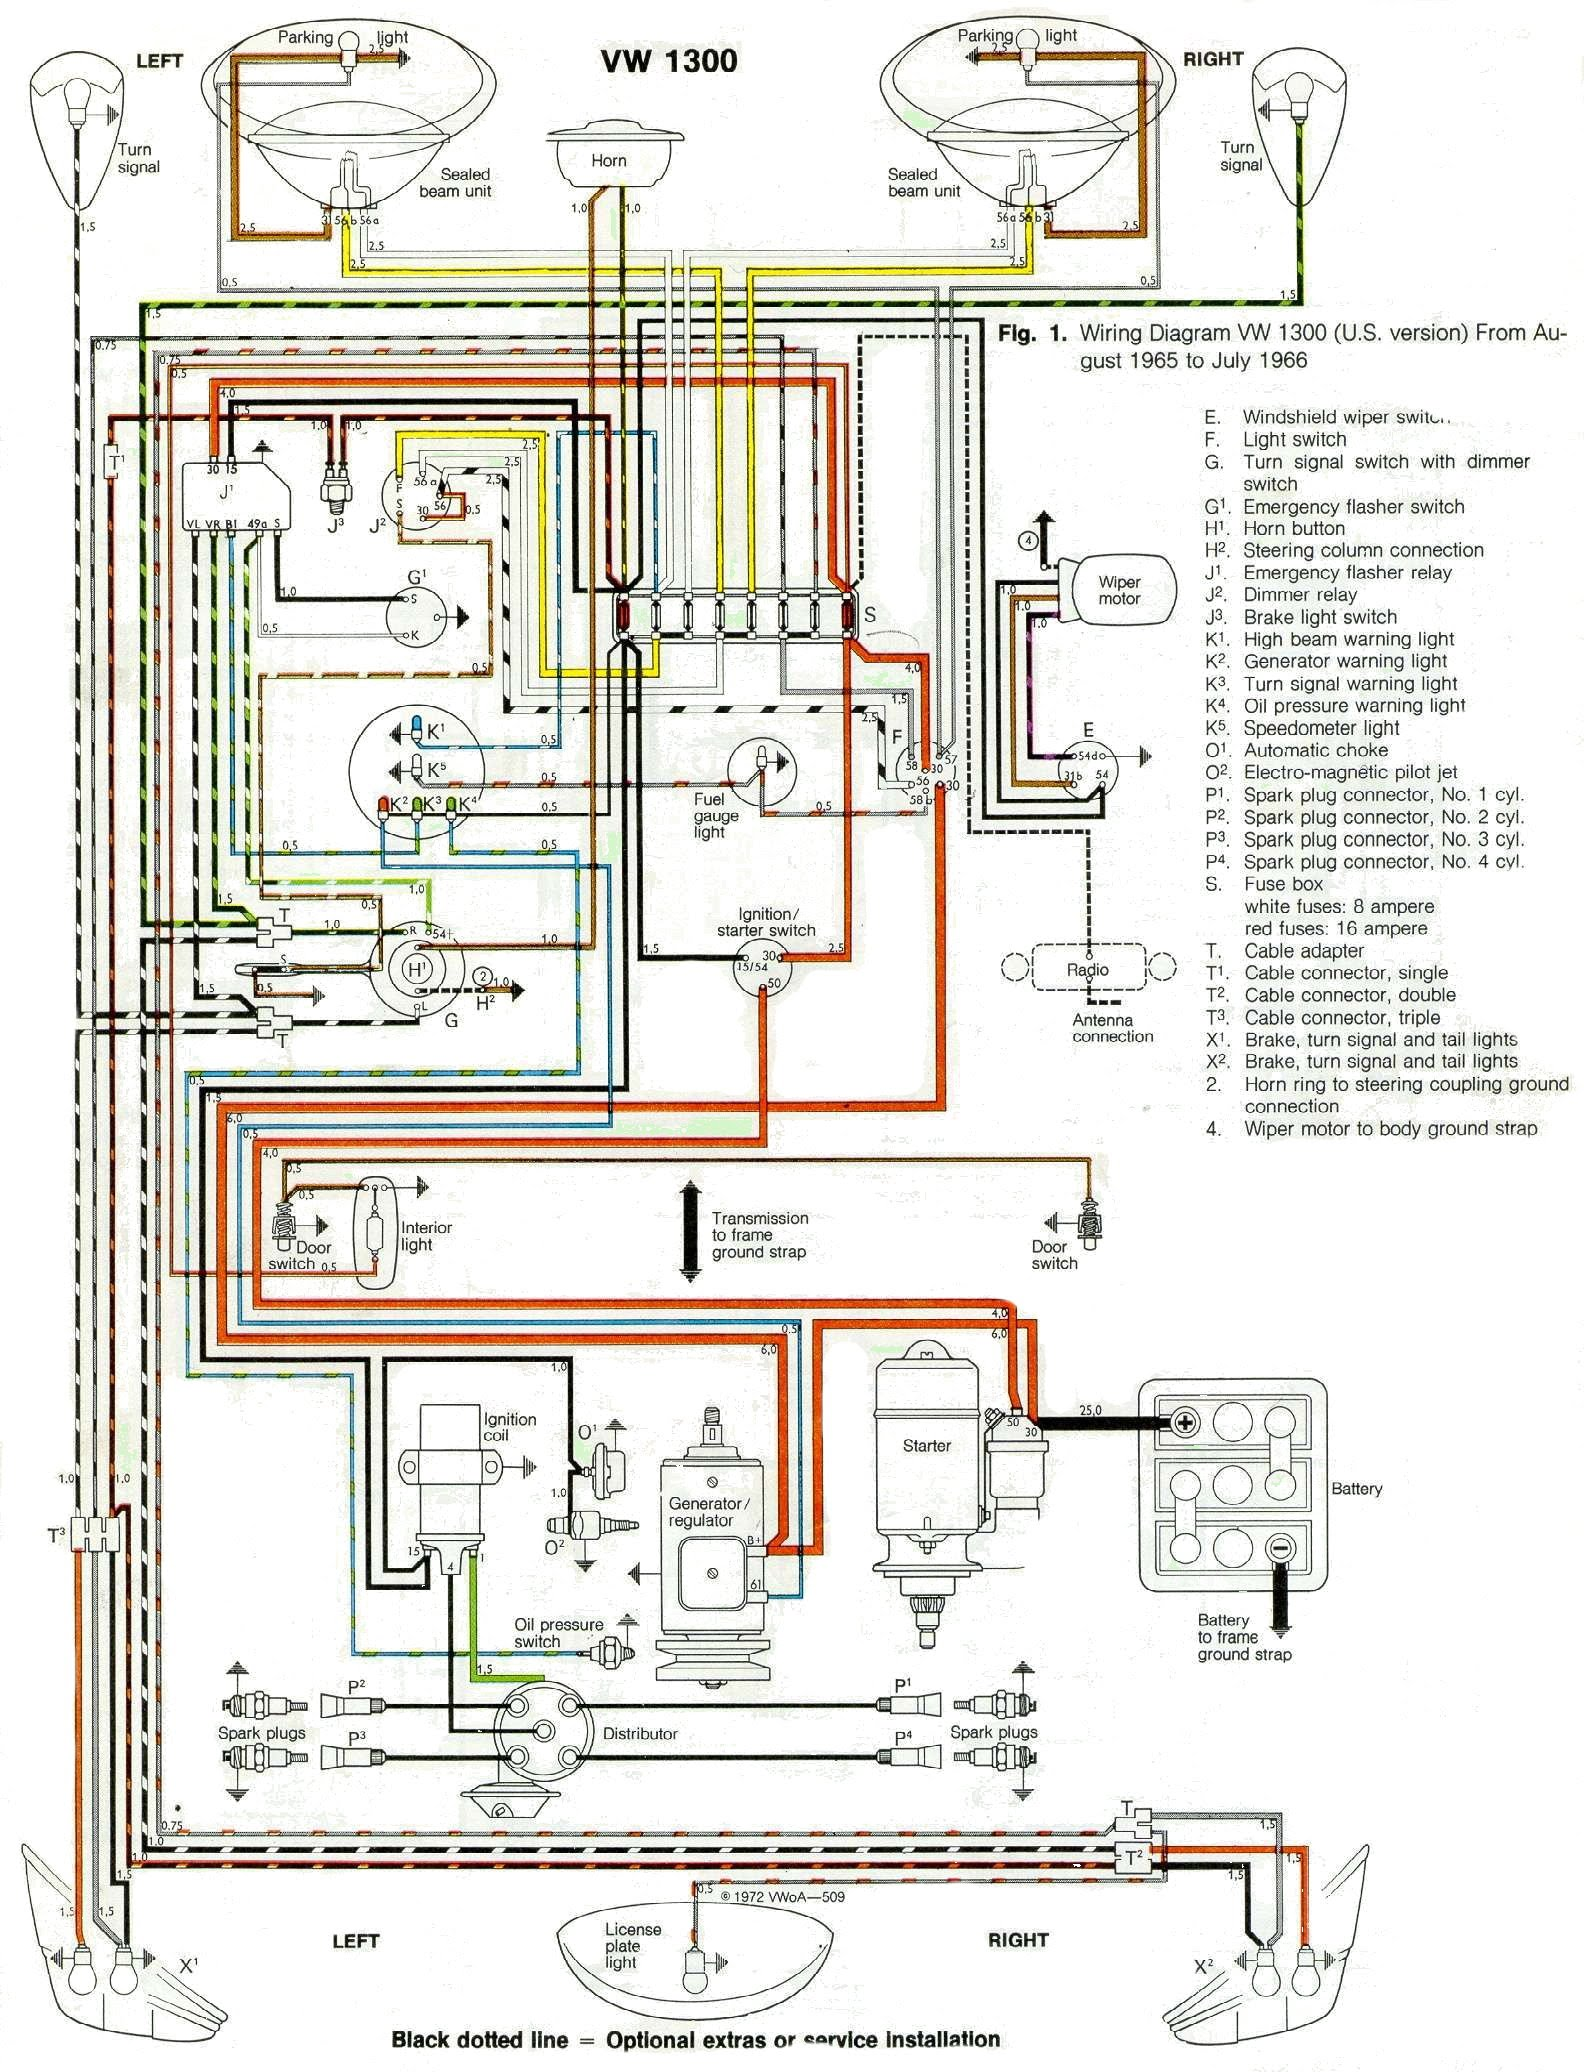 1965 volkswagen 1300 city car wiring diagram diagrams 19191168 vw golf wiring diagram electrical wiring vw citi golf wiring diagram at alyssarenee.co